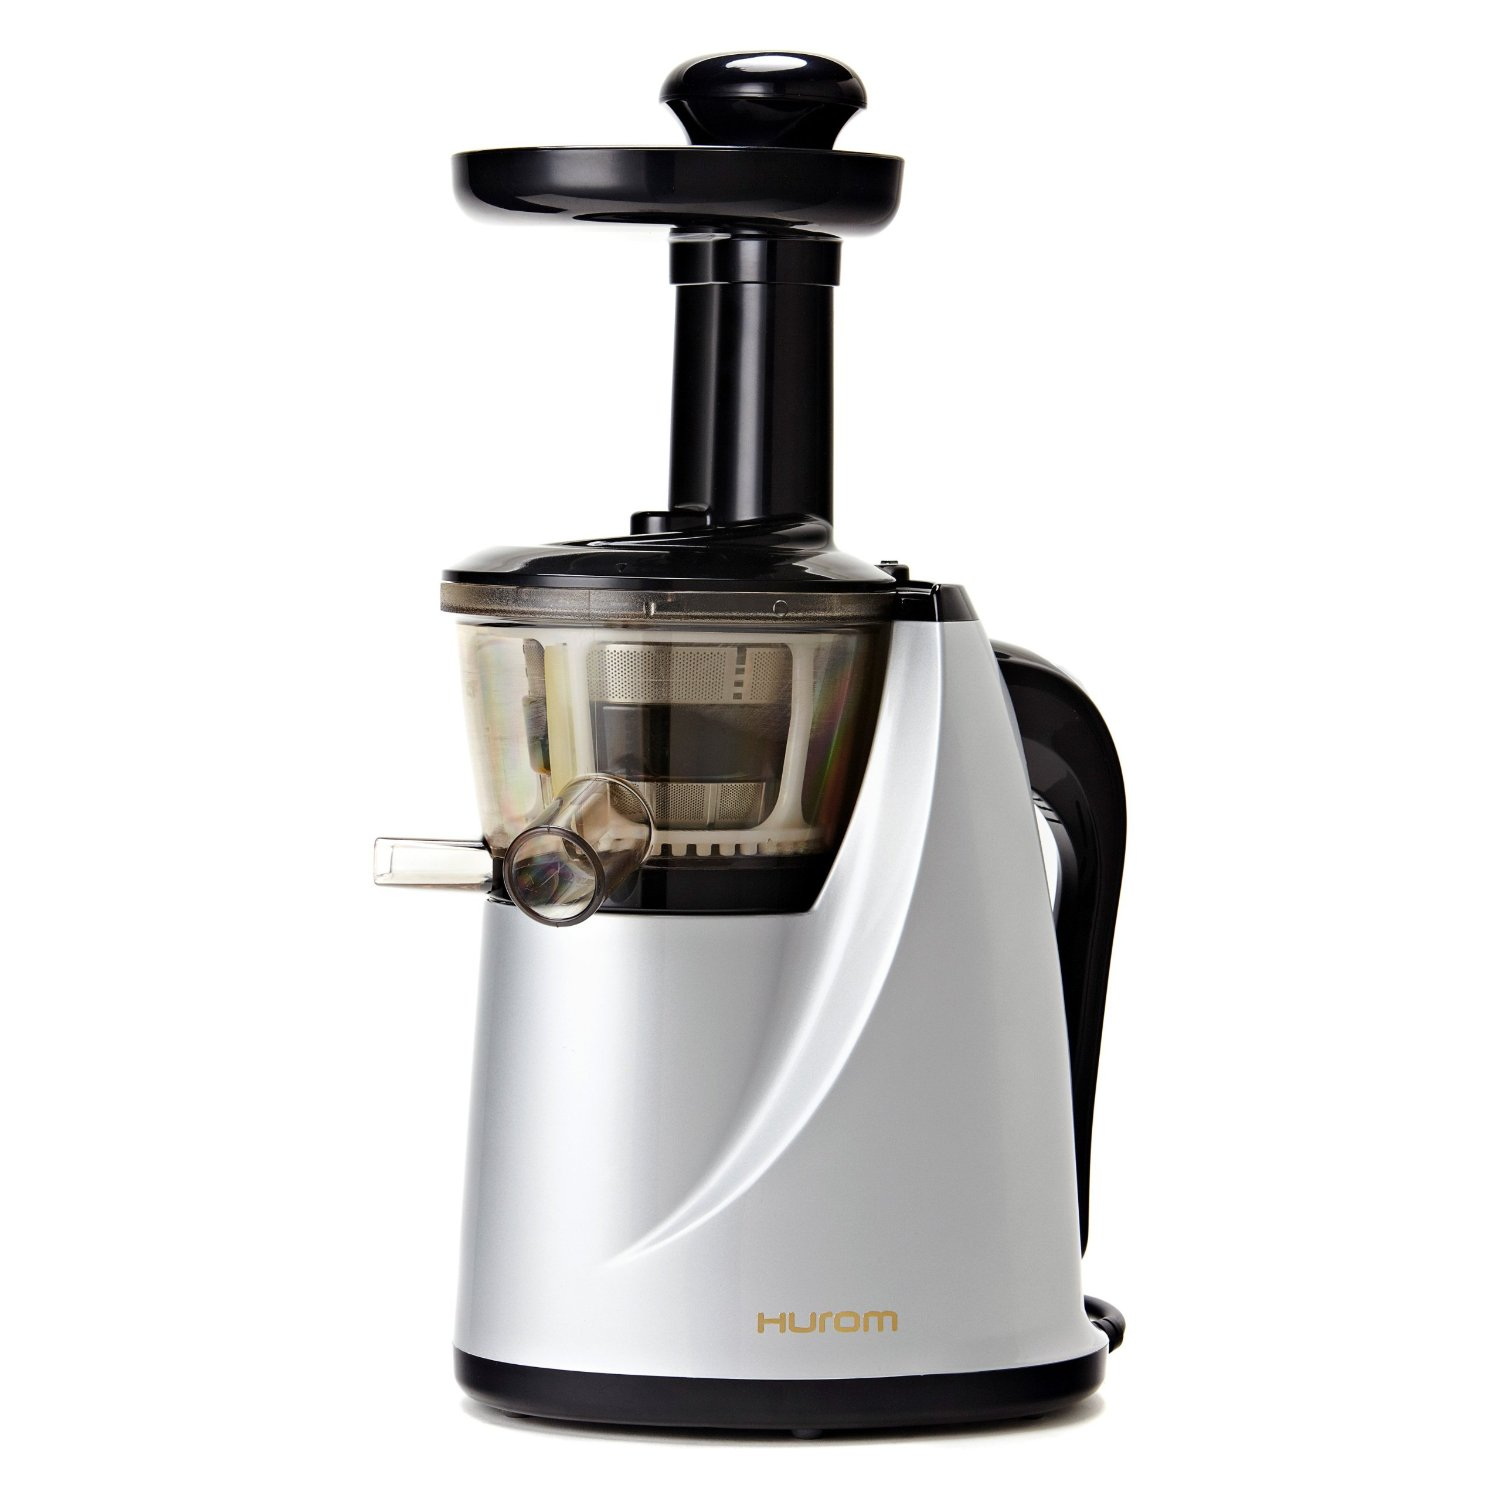 Types Of Hurom Slow Juicer : Hurom HU-100 Masticating Slow Juicer Review - Best Cold Press Juicers